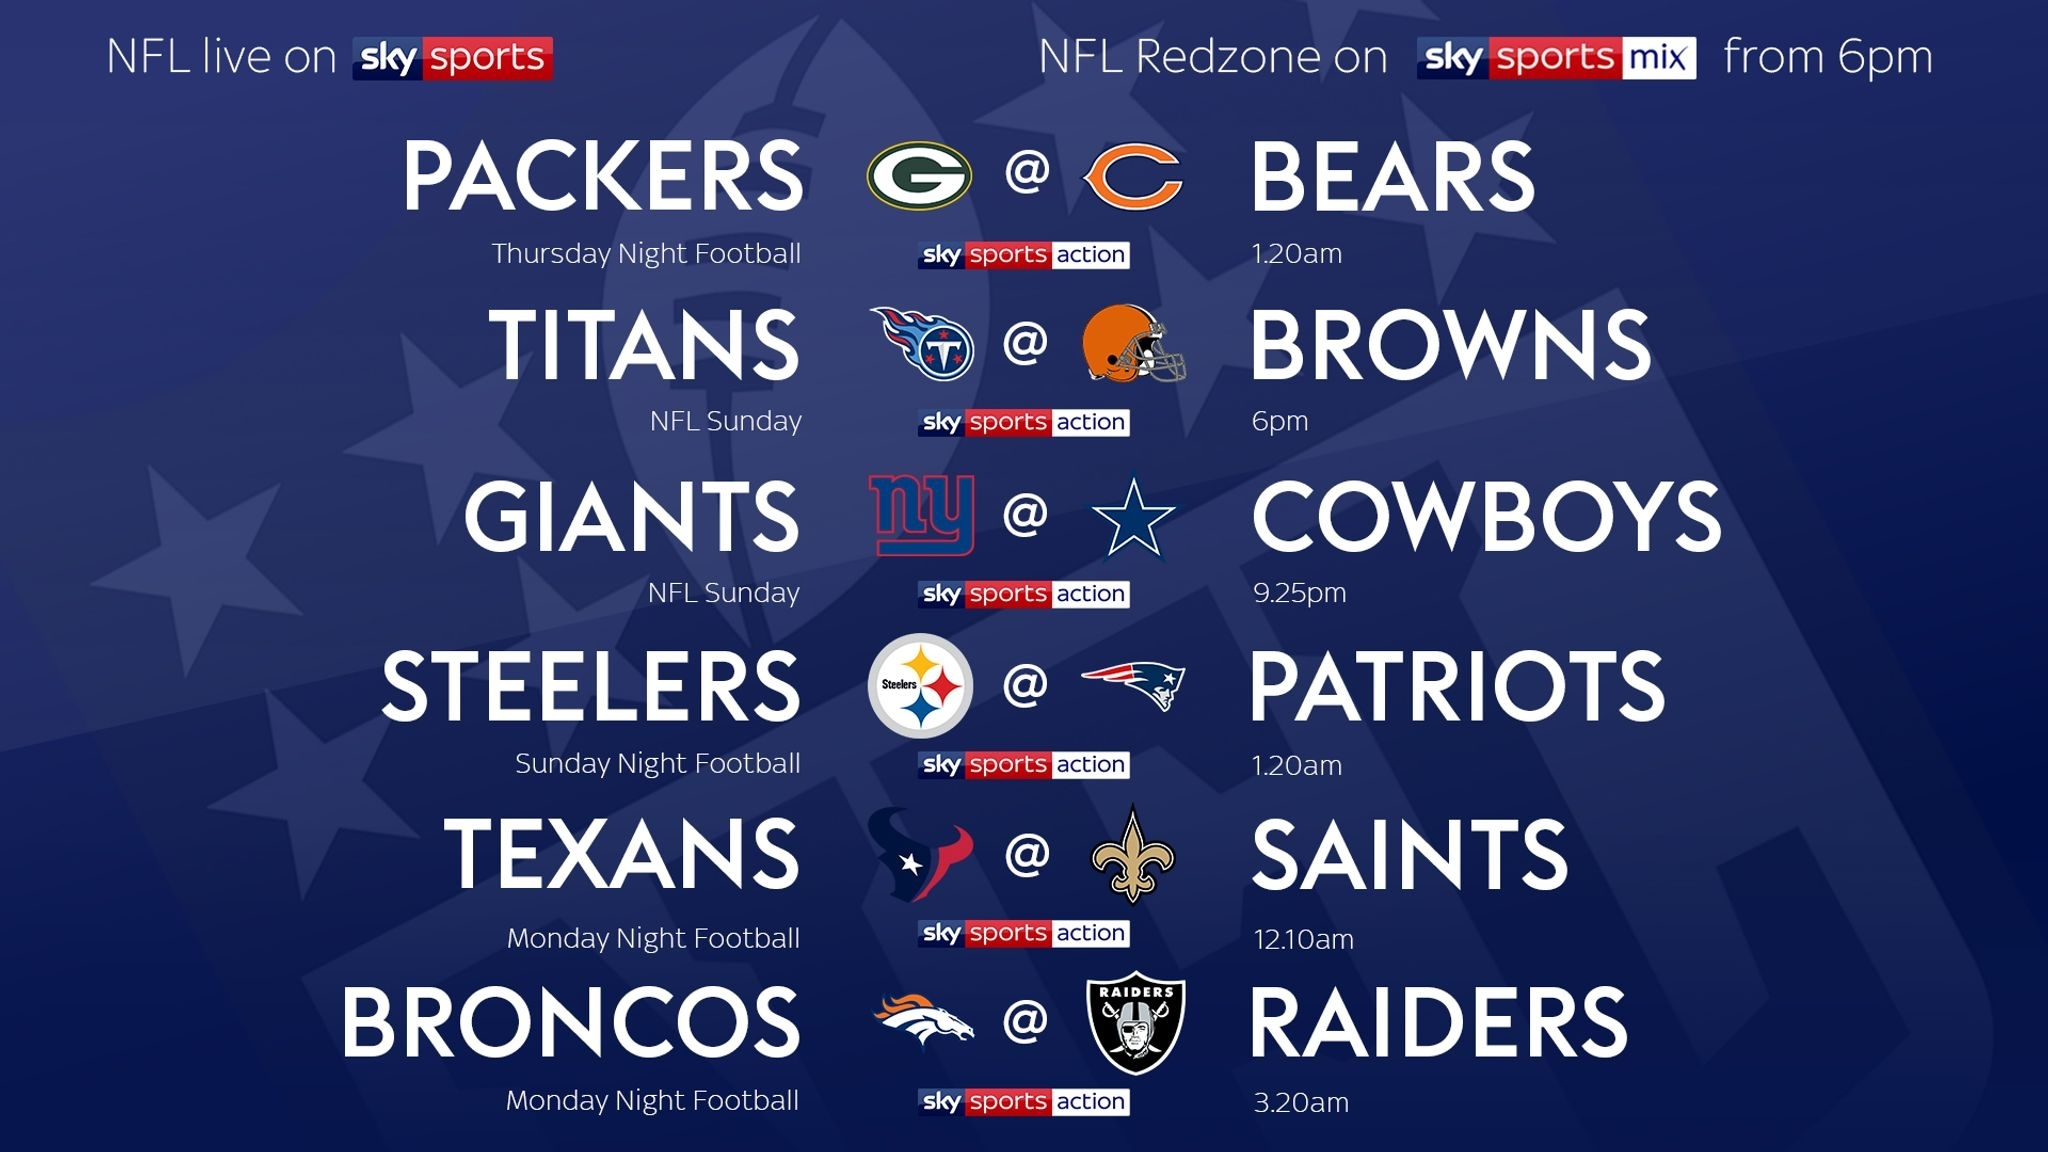 How To Follow The Nfl On Sky Sports In 2019/20 | Nfl News